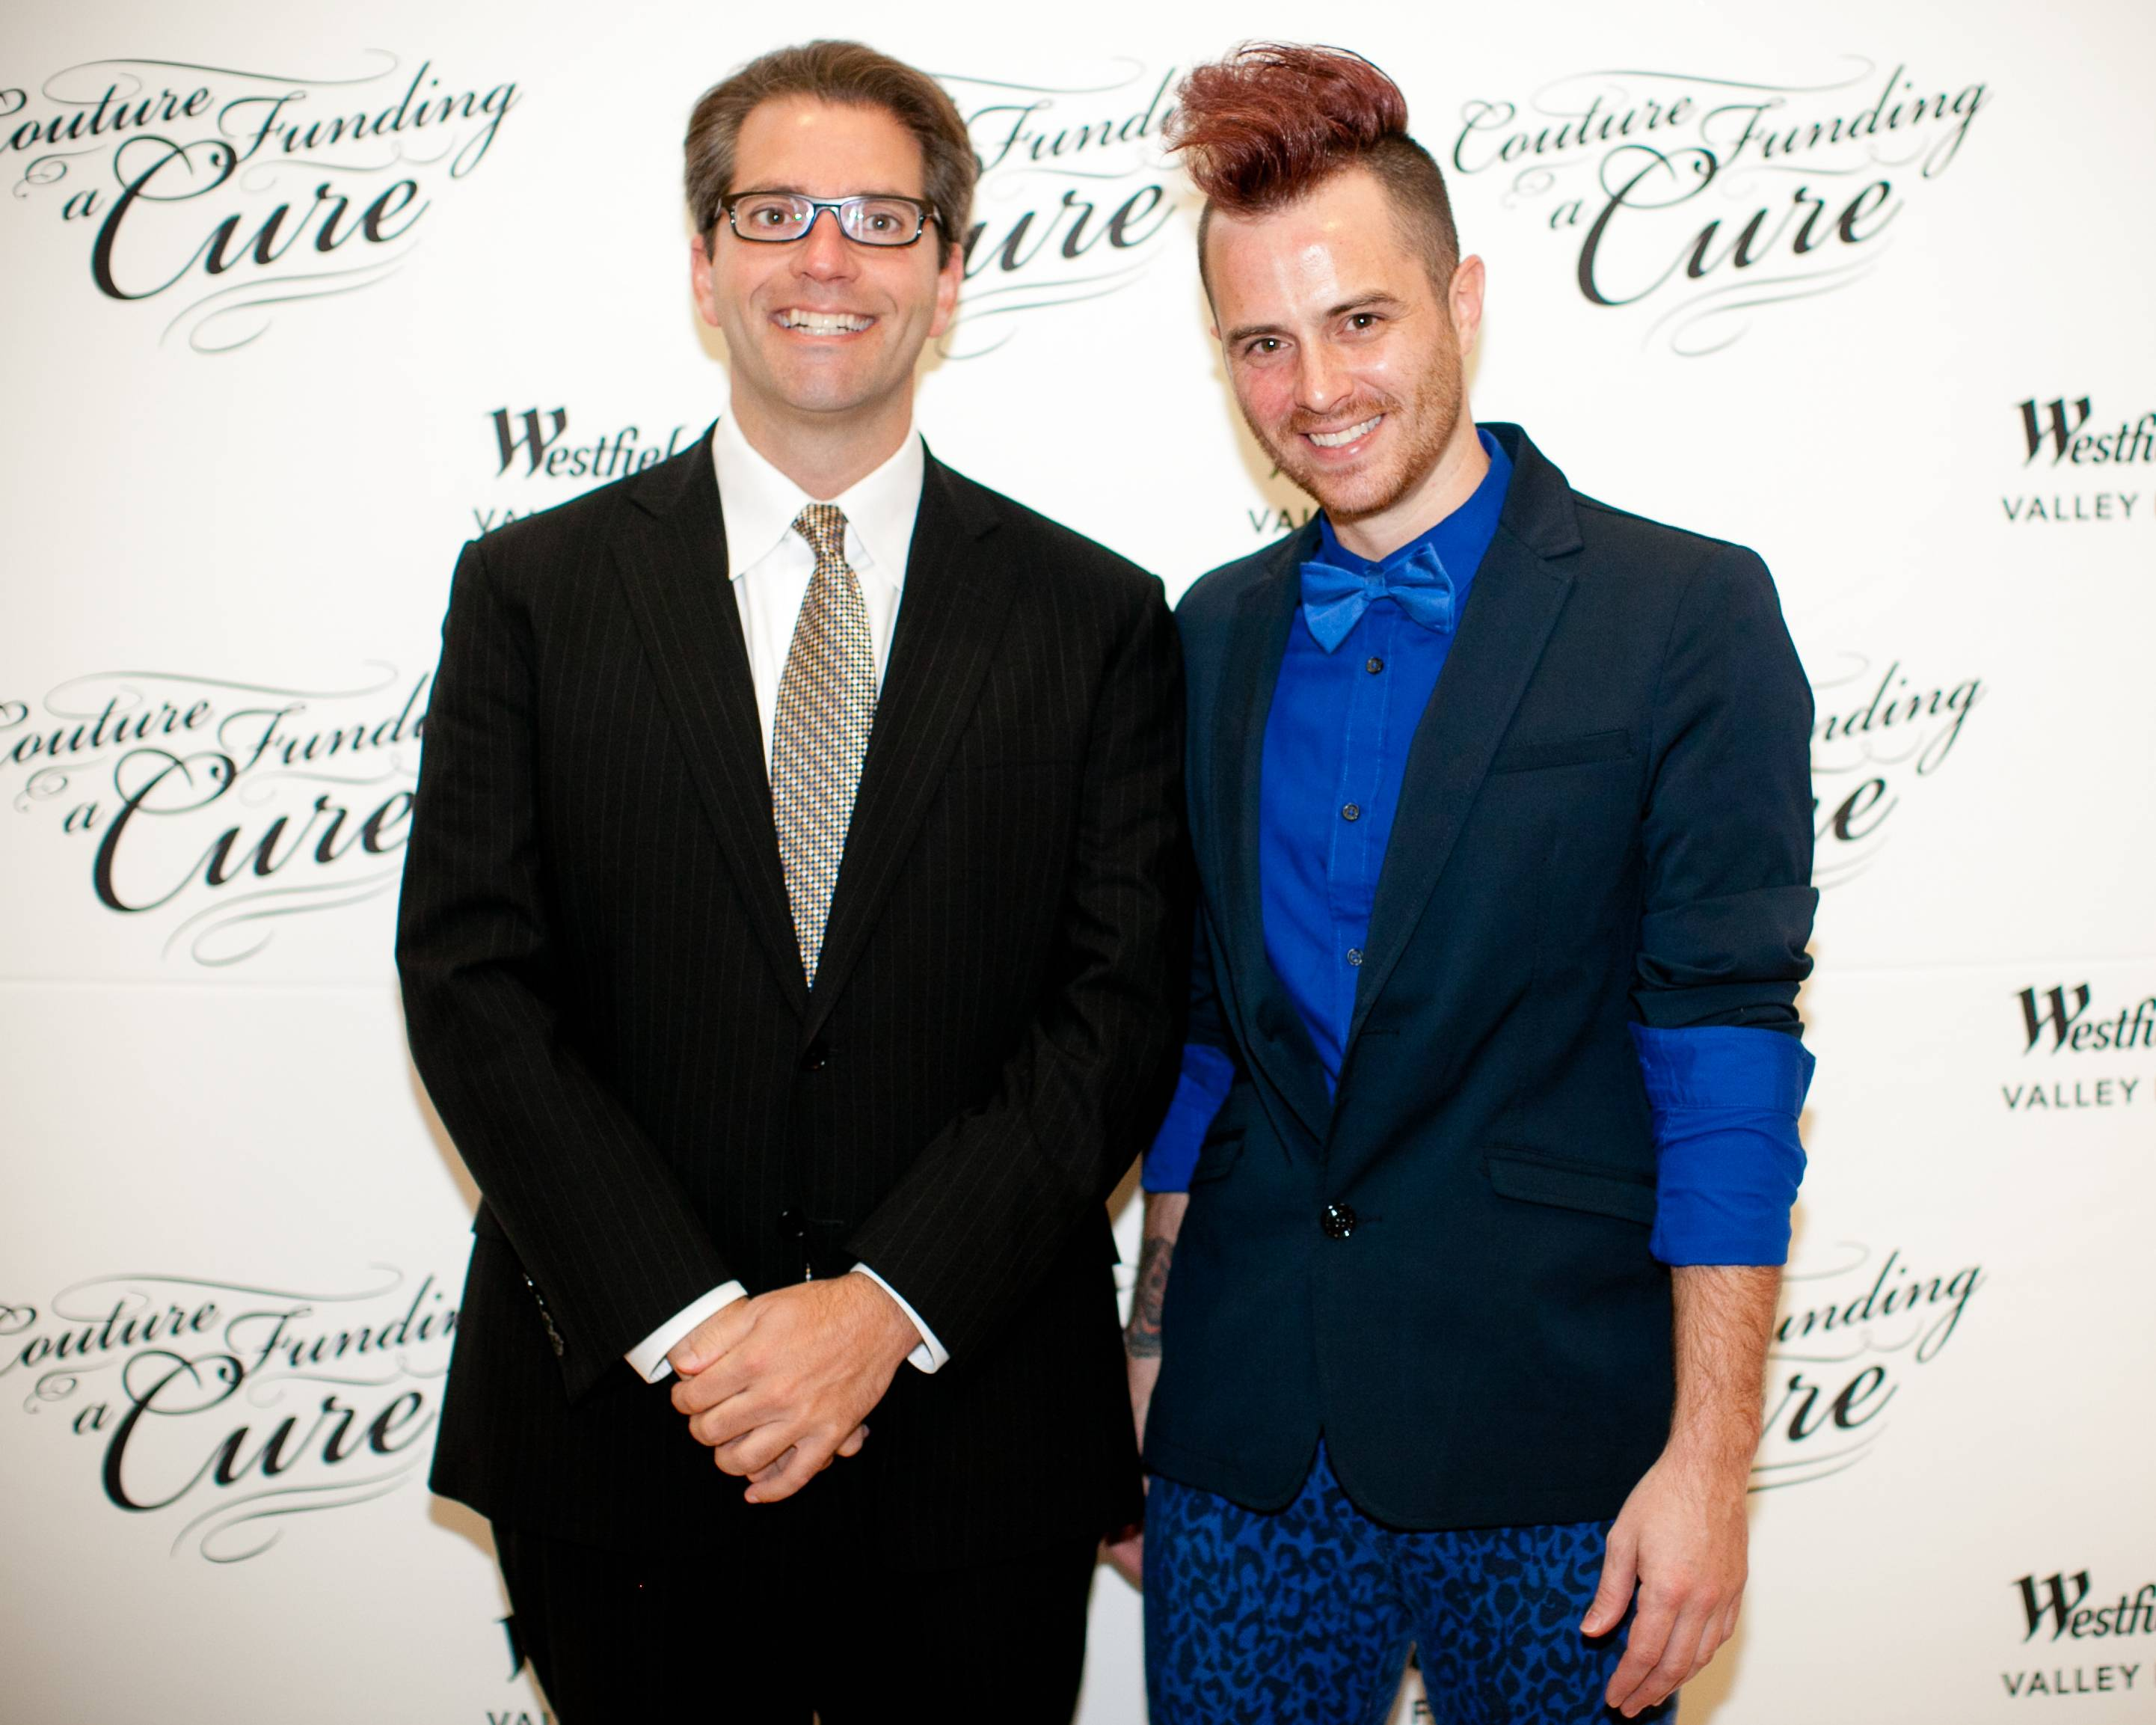 Pierluigi Oliverio, District 6 representative on the San Jose City Council, and Anthony Ryan Auld, Project Runway All Star designer on red carpet credit Moanalani Jeffery